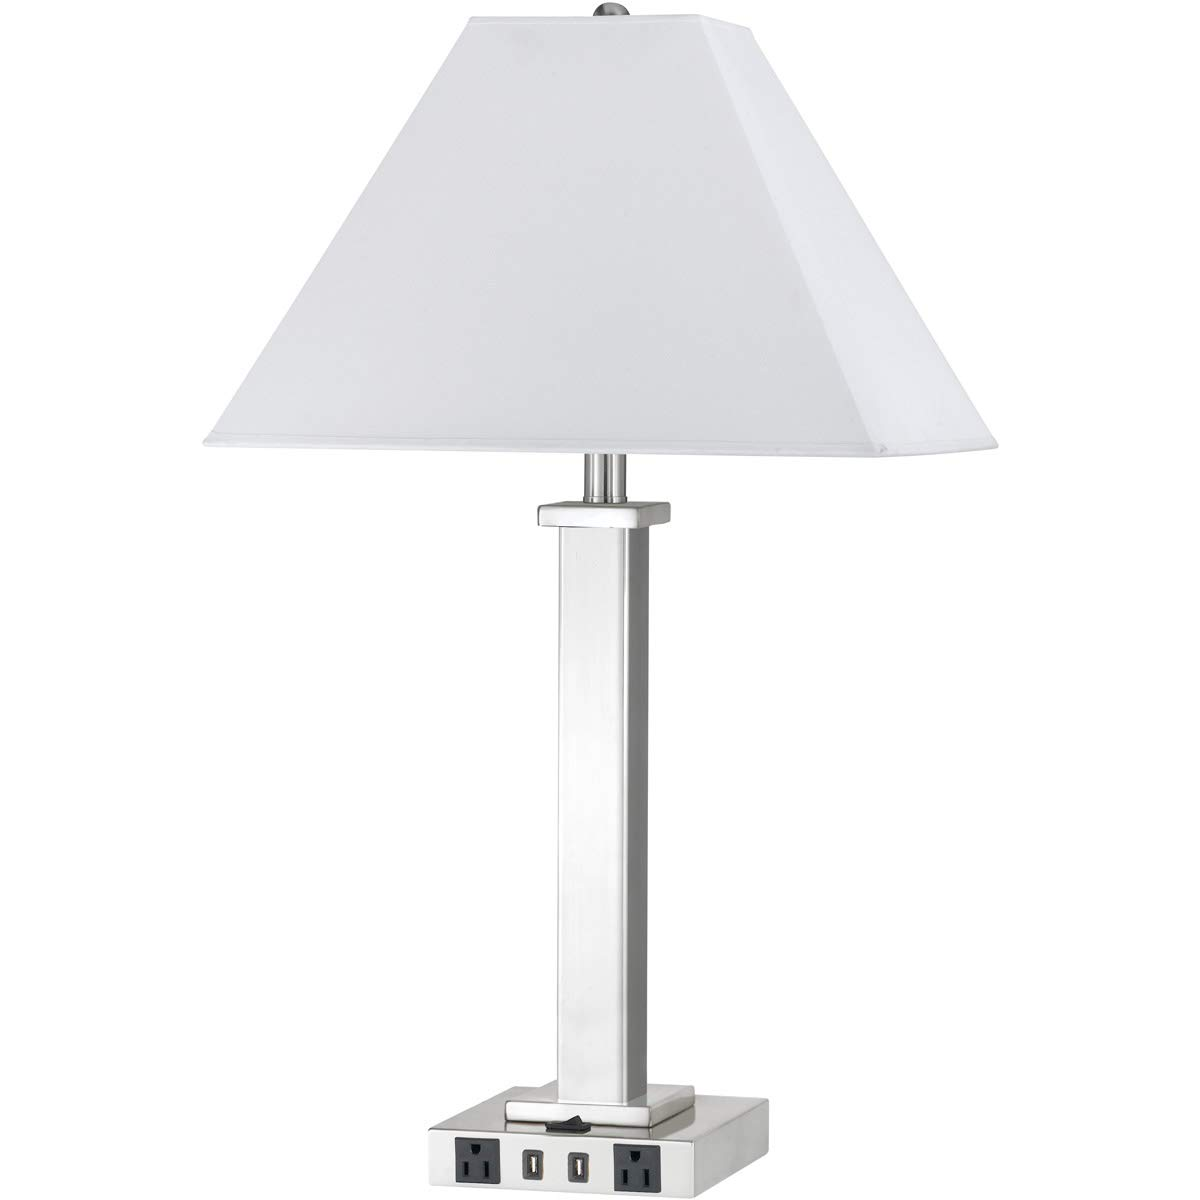 Table lamps 1 light fixtures with brushed steel finish metal material e26 bulb 16 100 watts amazon com